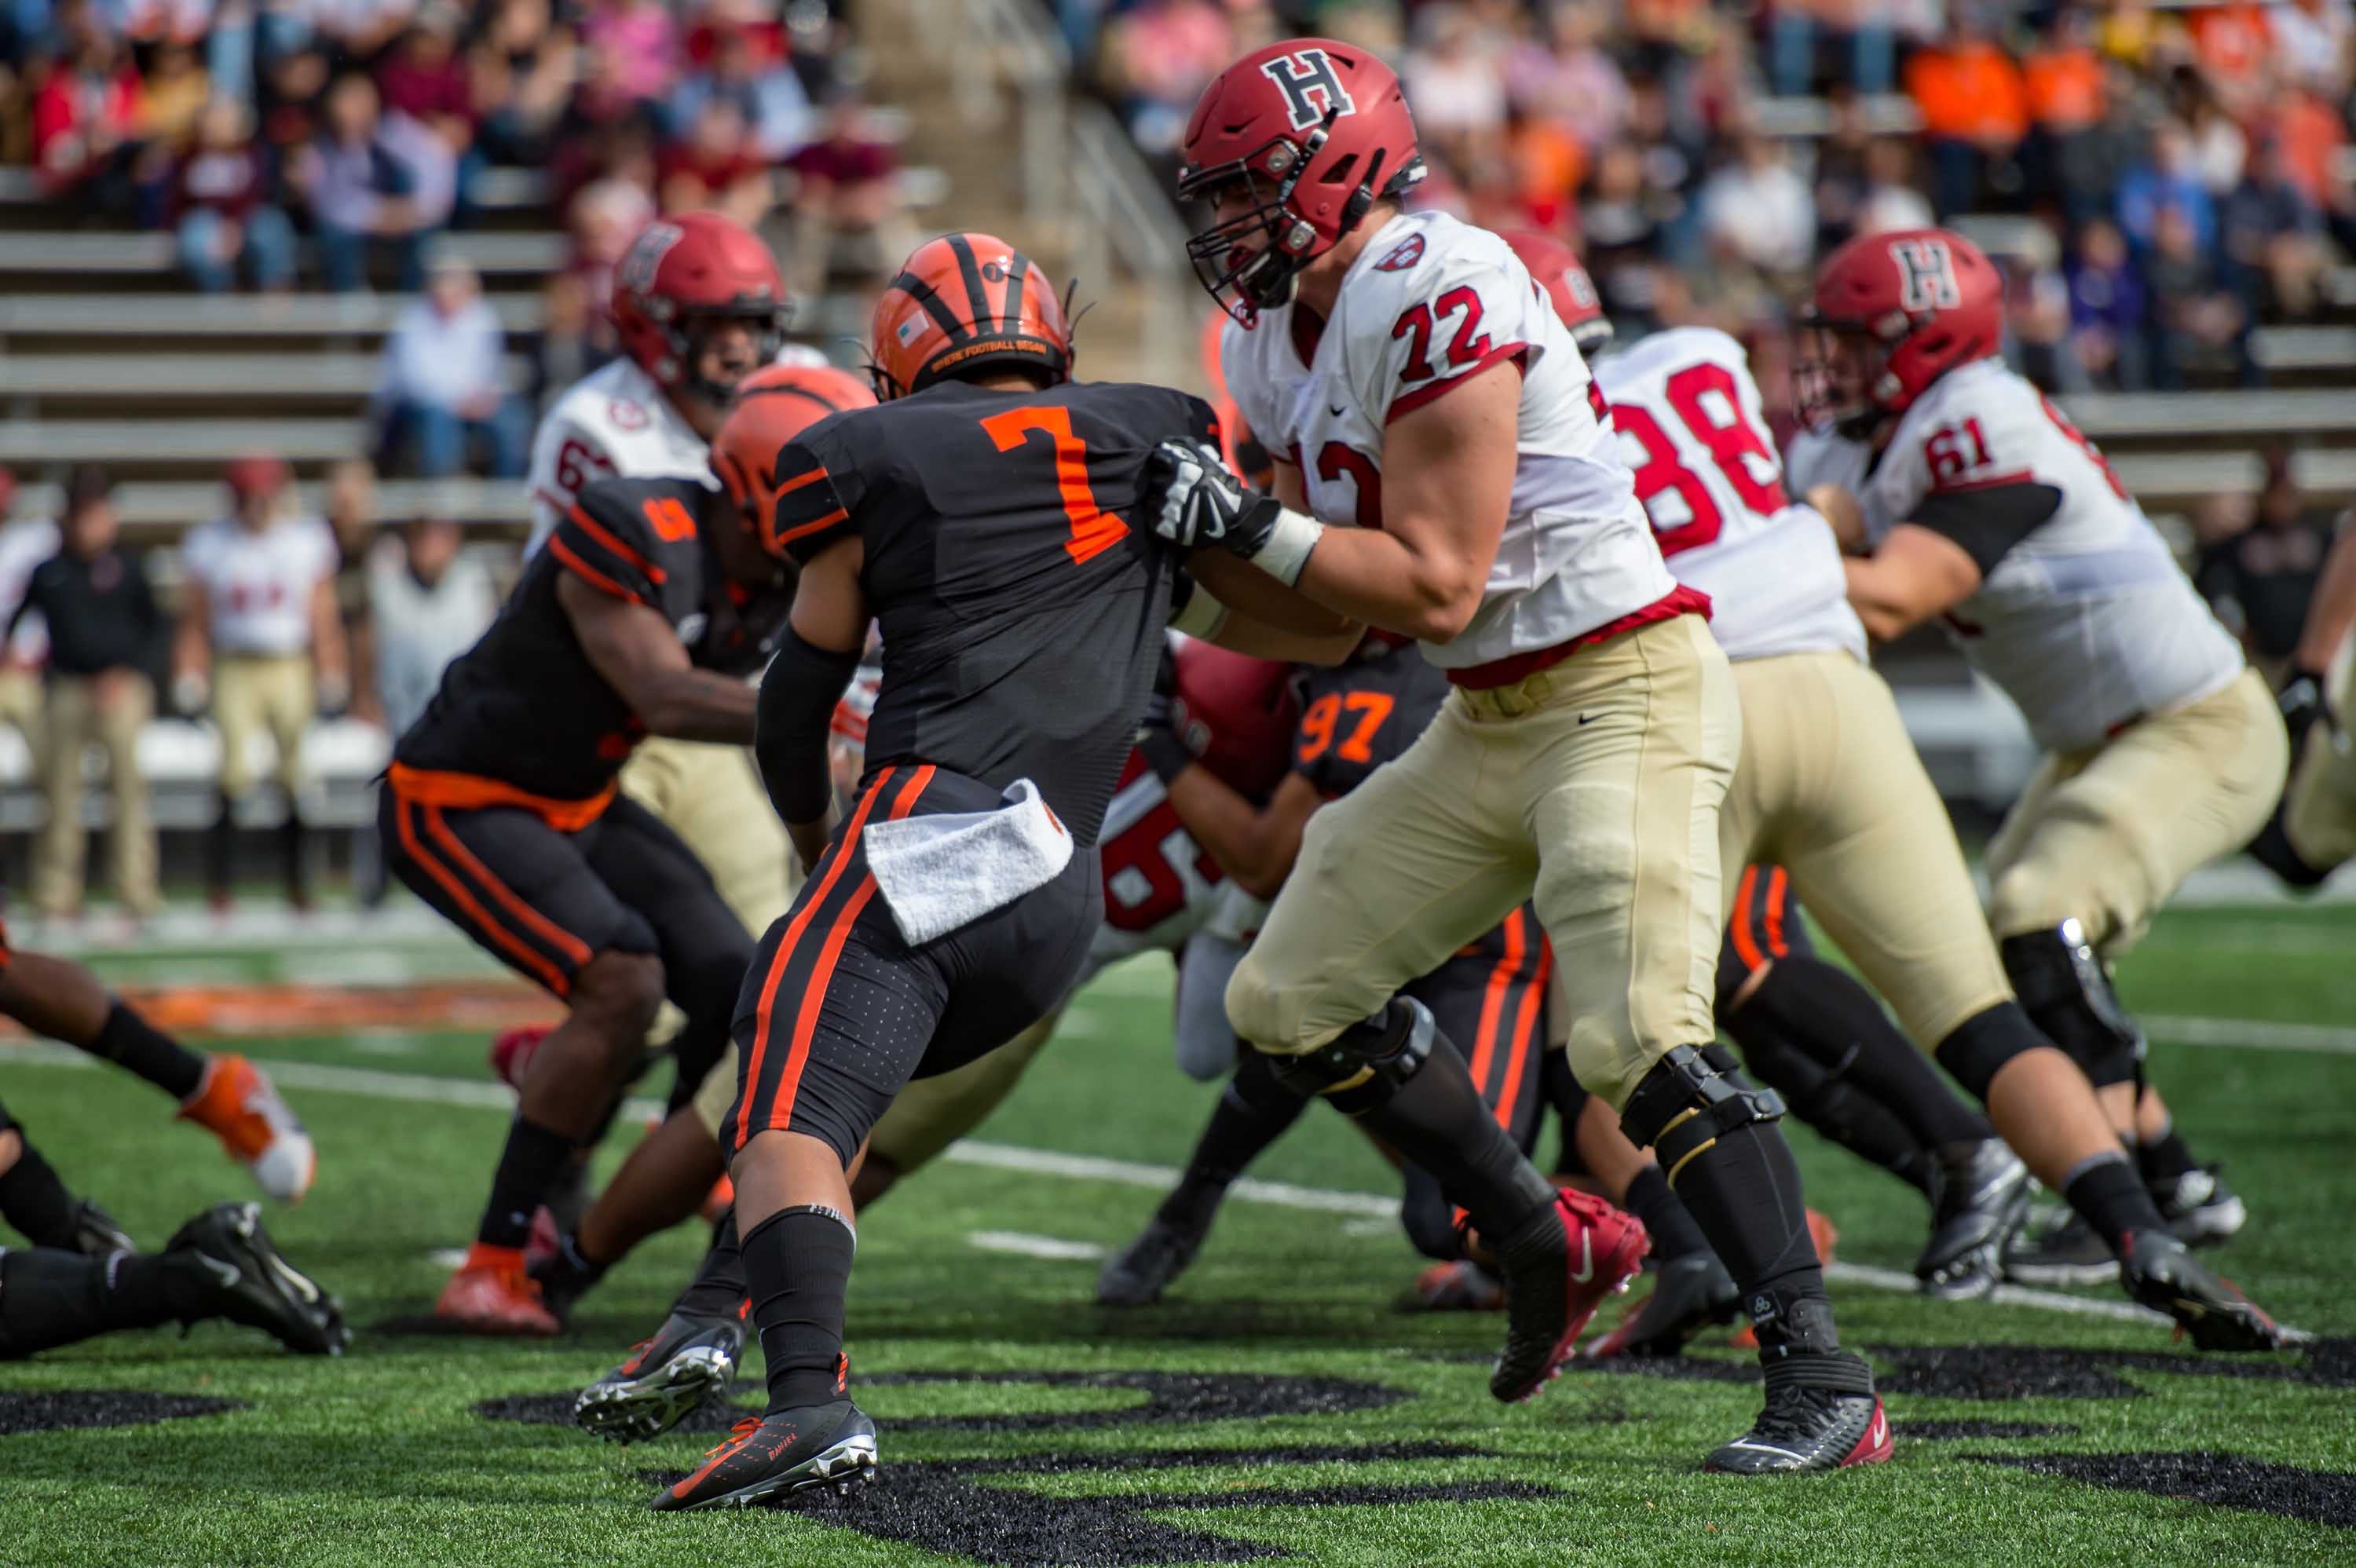 Harvard Crimson offensive lineman Spencer Rolland (72) blocks during a college football game between the Harvard Crimson and Princeton Tigers, at Princeton Stadium in New Jersey, in October 2019.